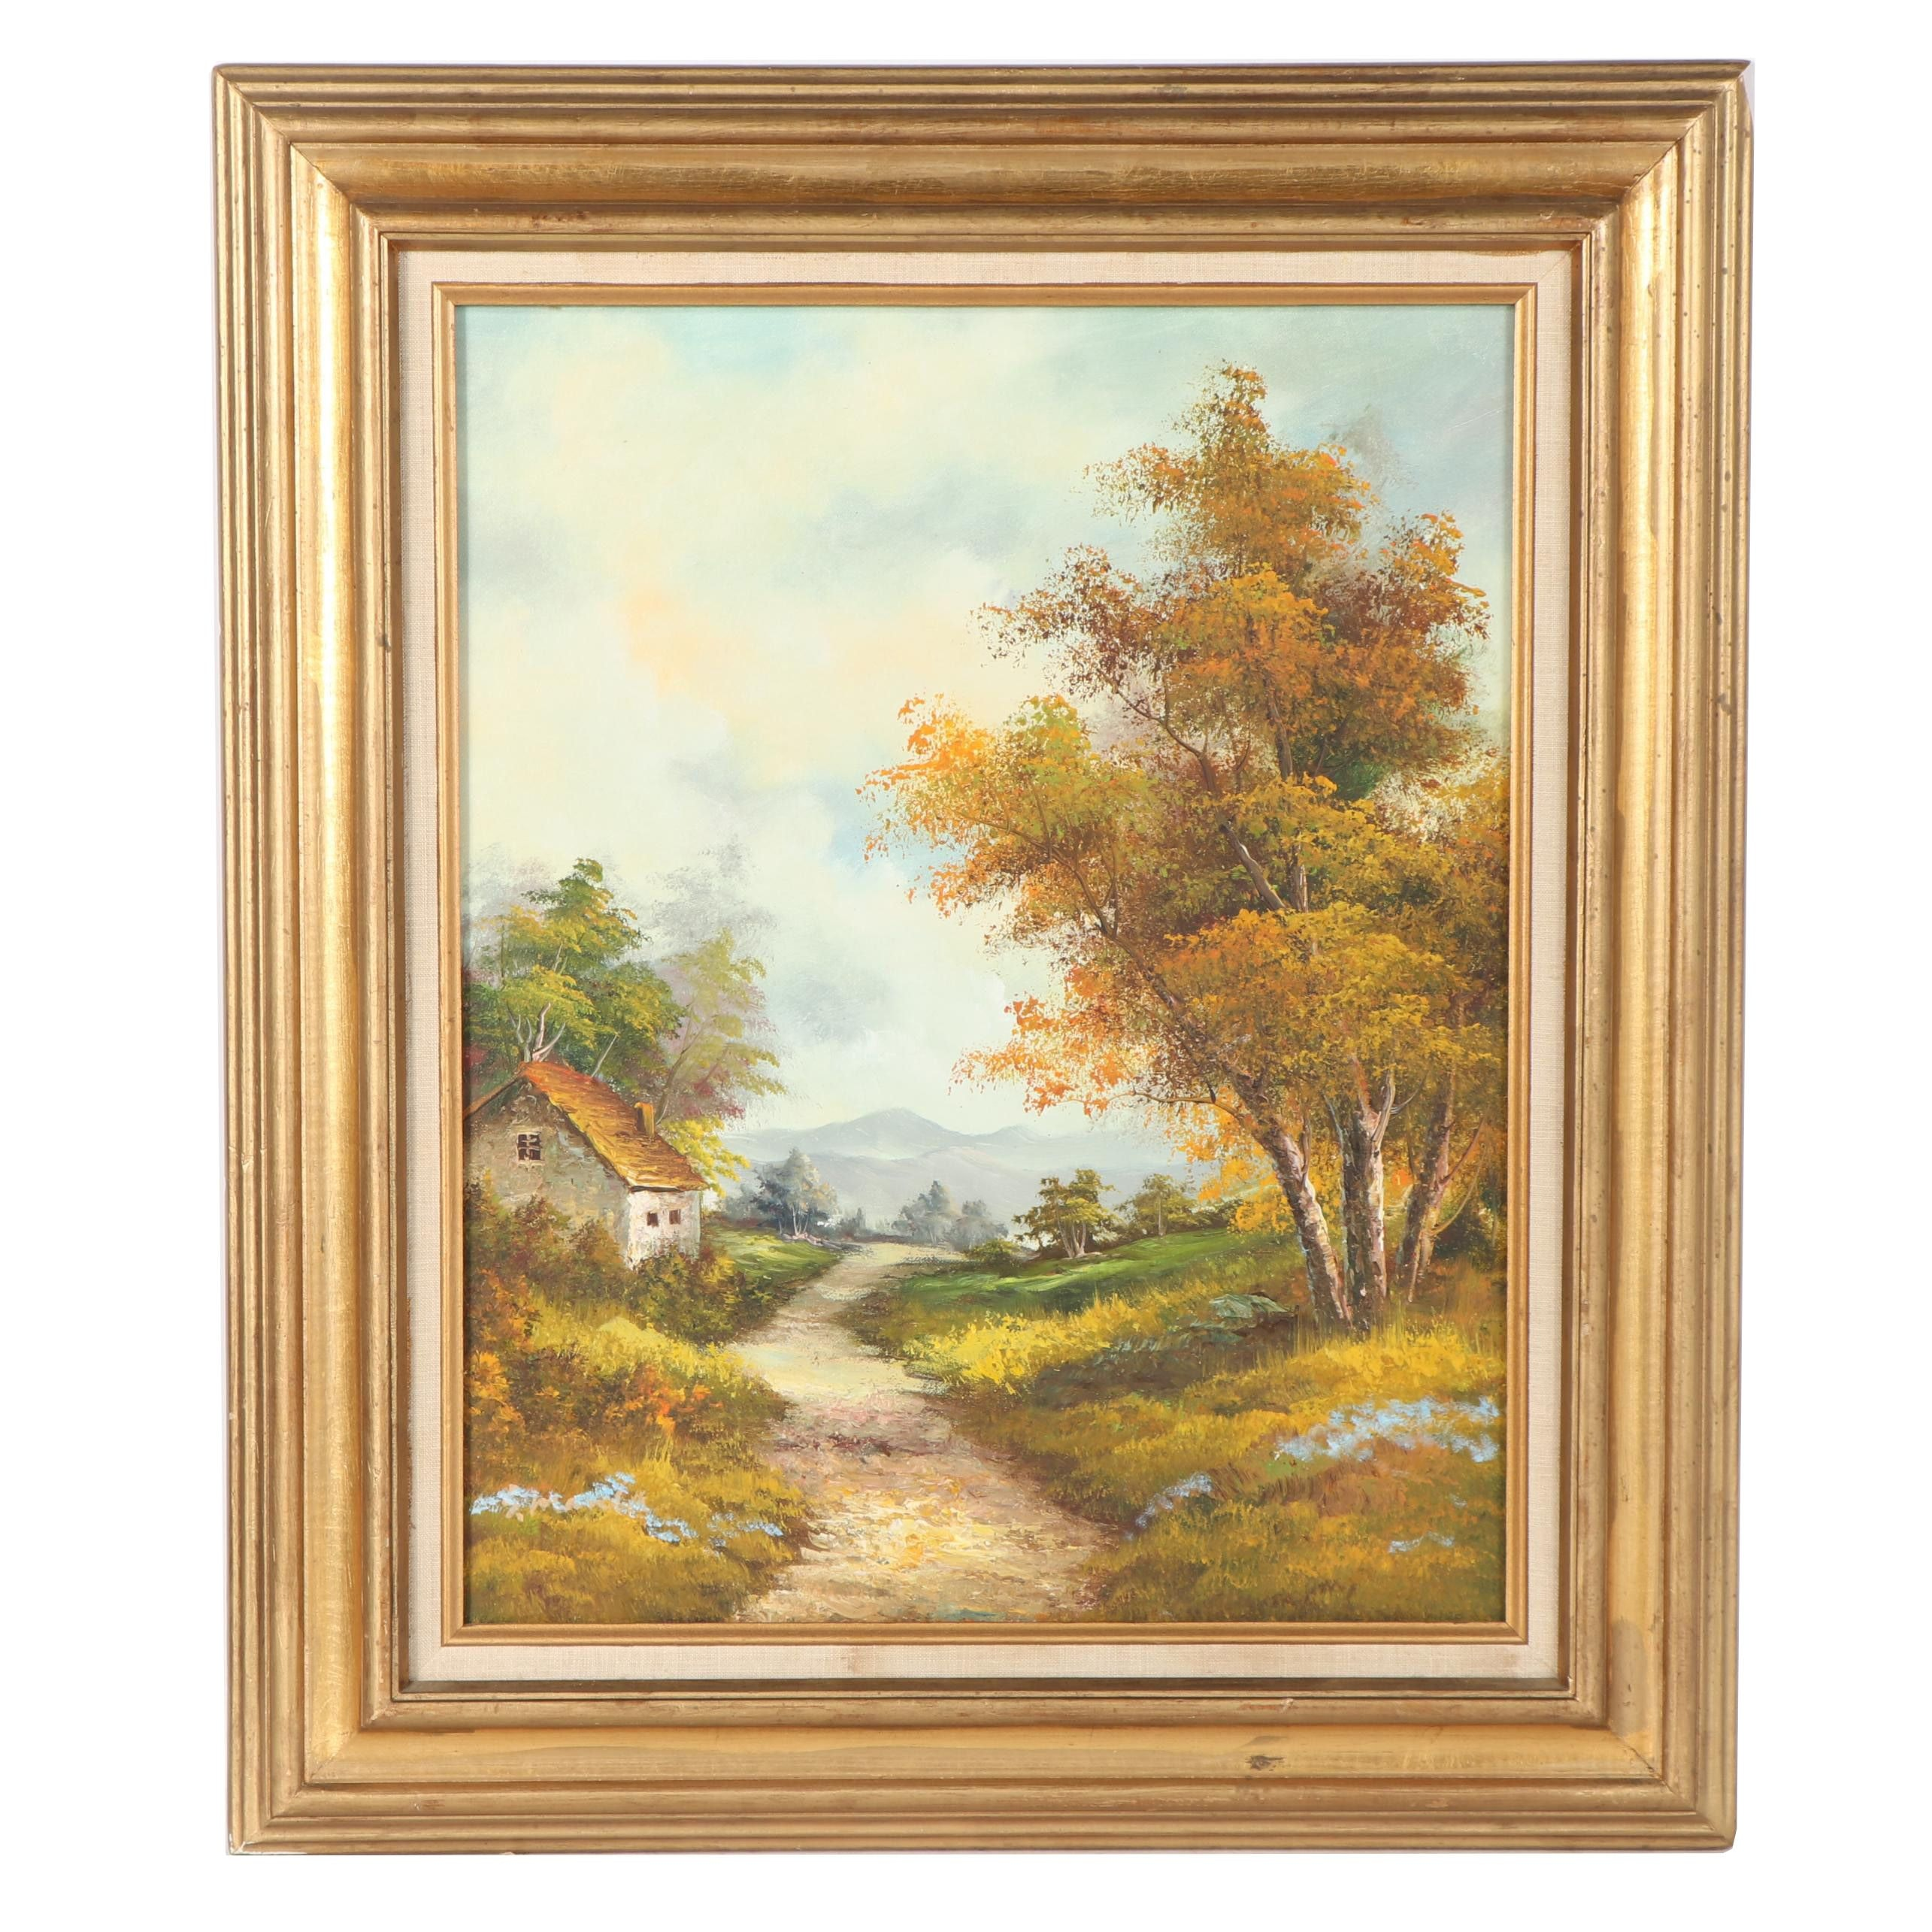 Oil Painting of Rural Landscape